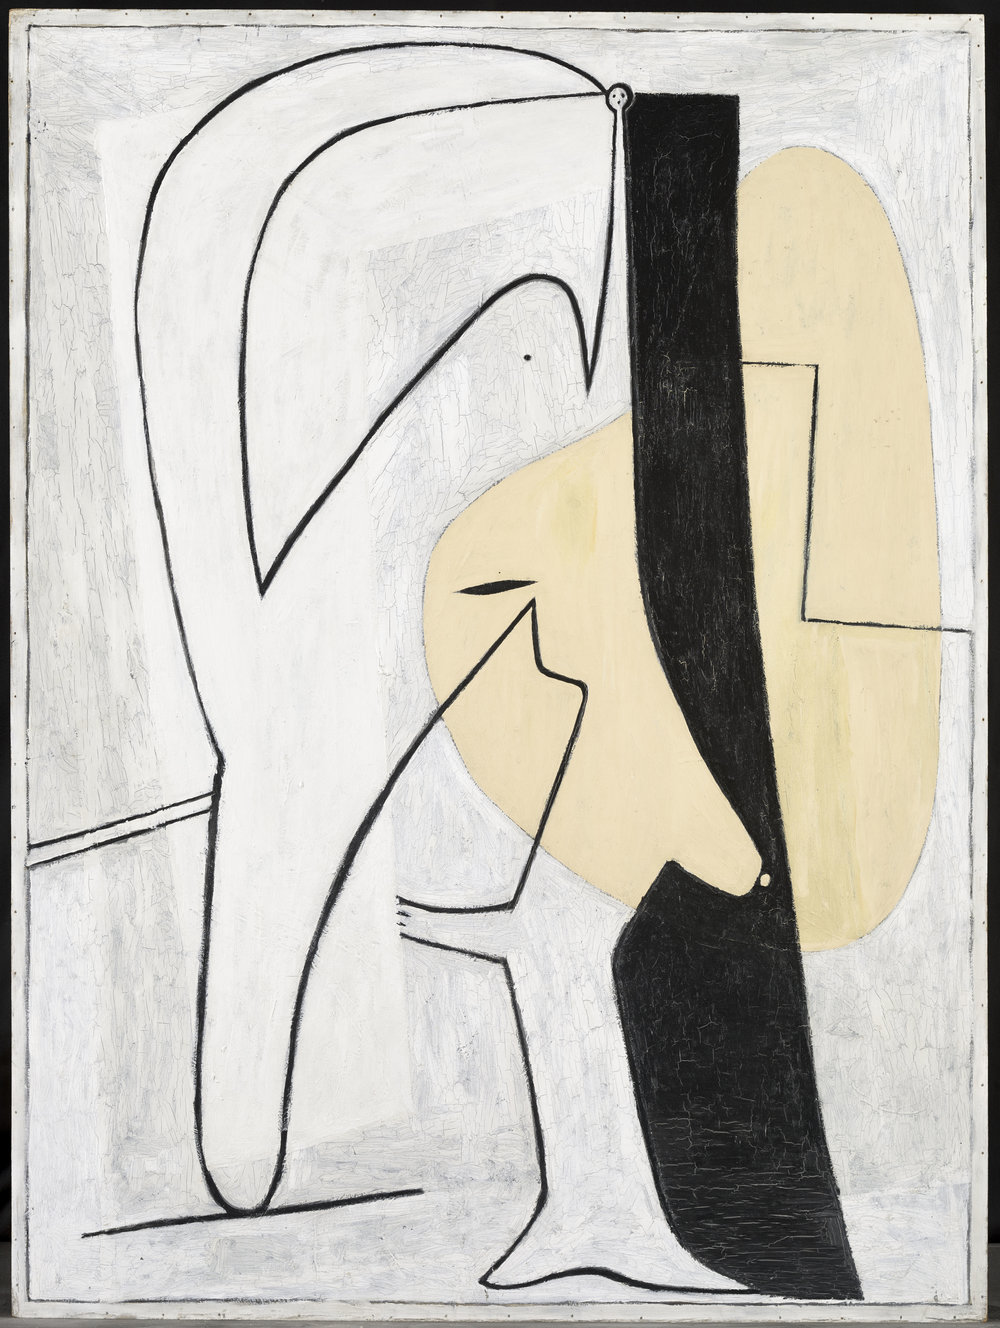 Pablo Picasso. Figure (1927) Musée National Picasso-Paris Dation Pablo Picasso. Courtesy: Pablo Picasso © Pablo Picasso Estate